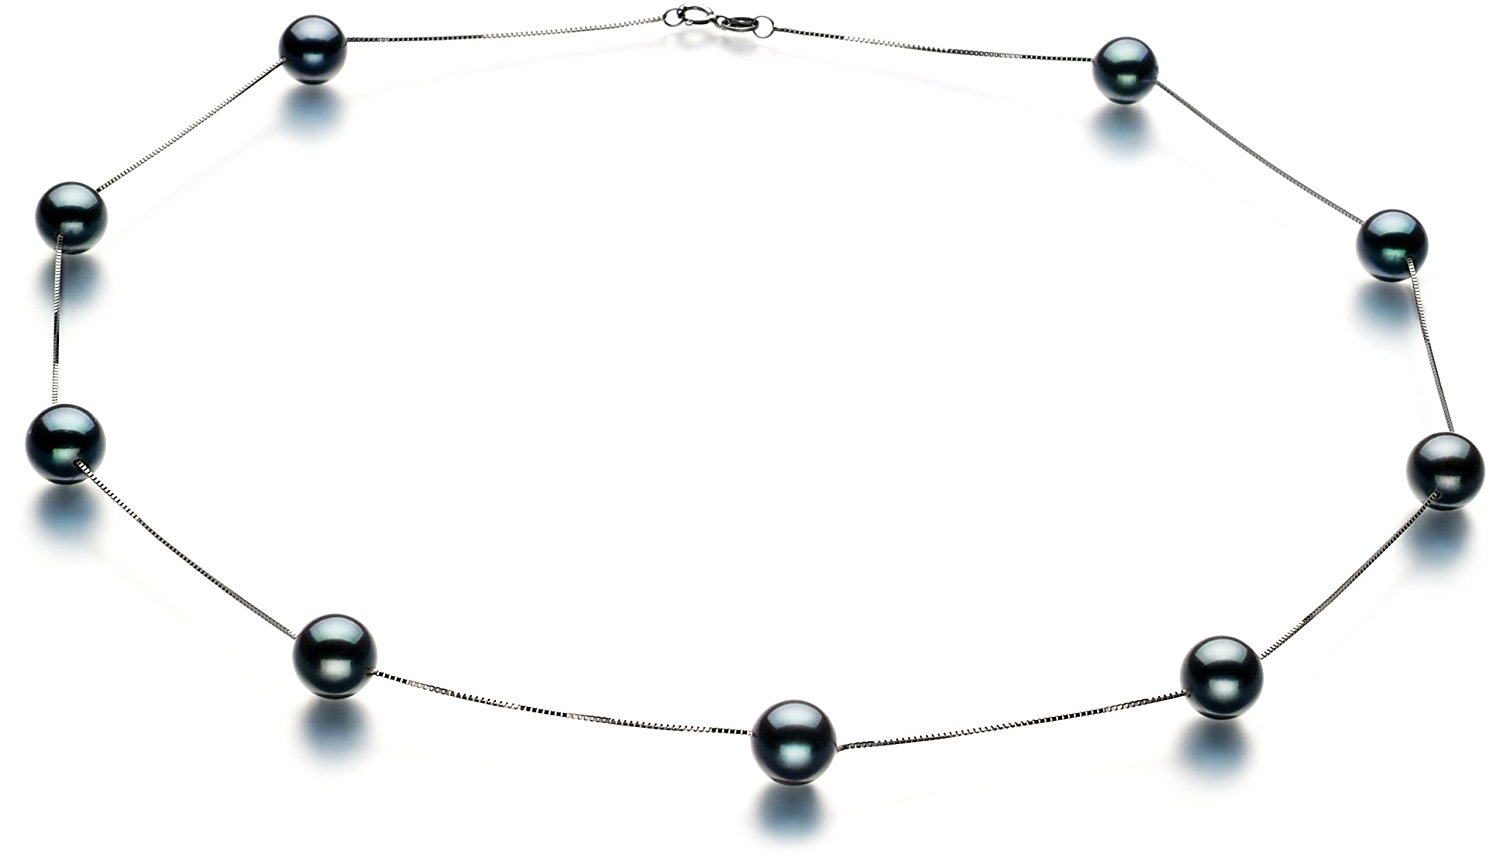 Tin Cup Black 7-8mm AAA Quality Japanese Akoya 14K White Gold Cultured Pearl Necklace-17.5 in length